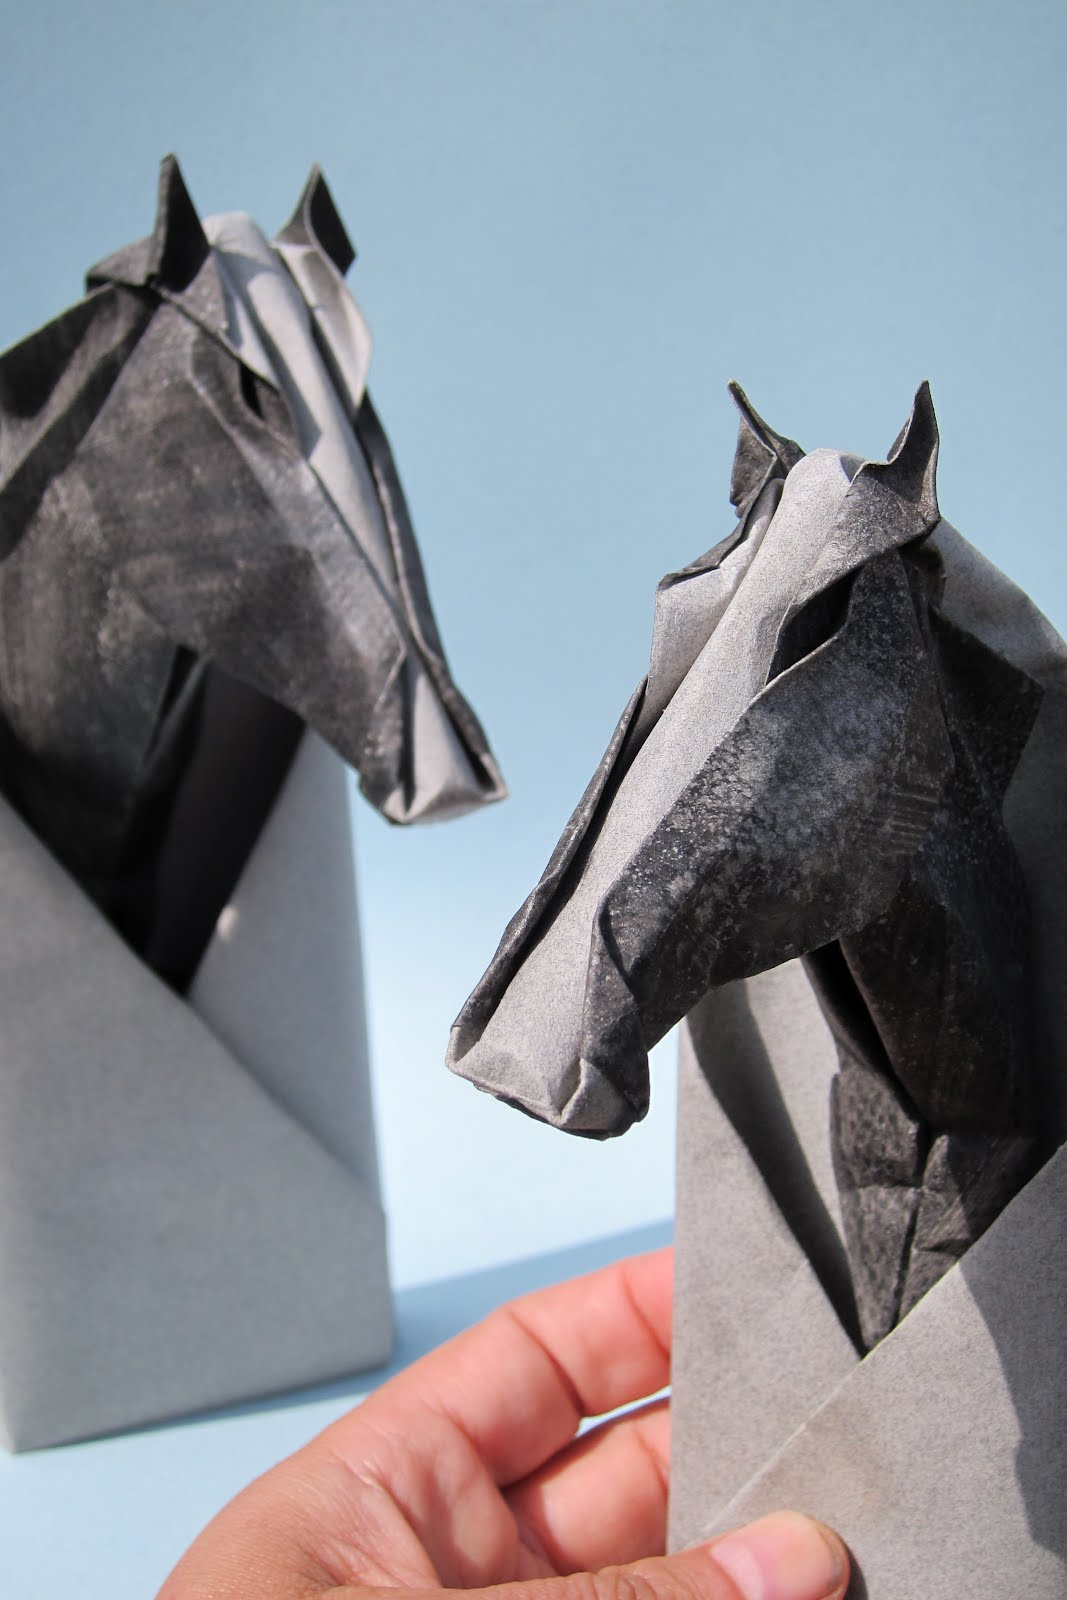 Horse Head Origami Sculptures Like These Have Been Shown At The BETA International Fair In Birmingham For Equestrian Crowd There Chi Mei